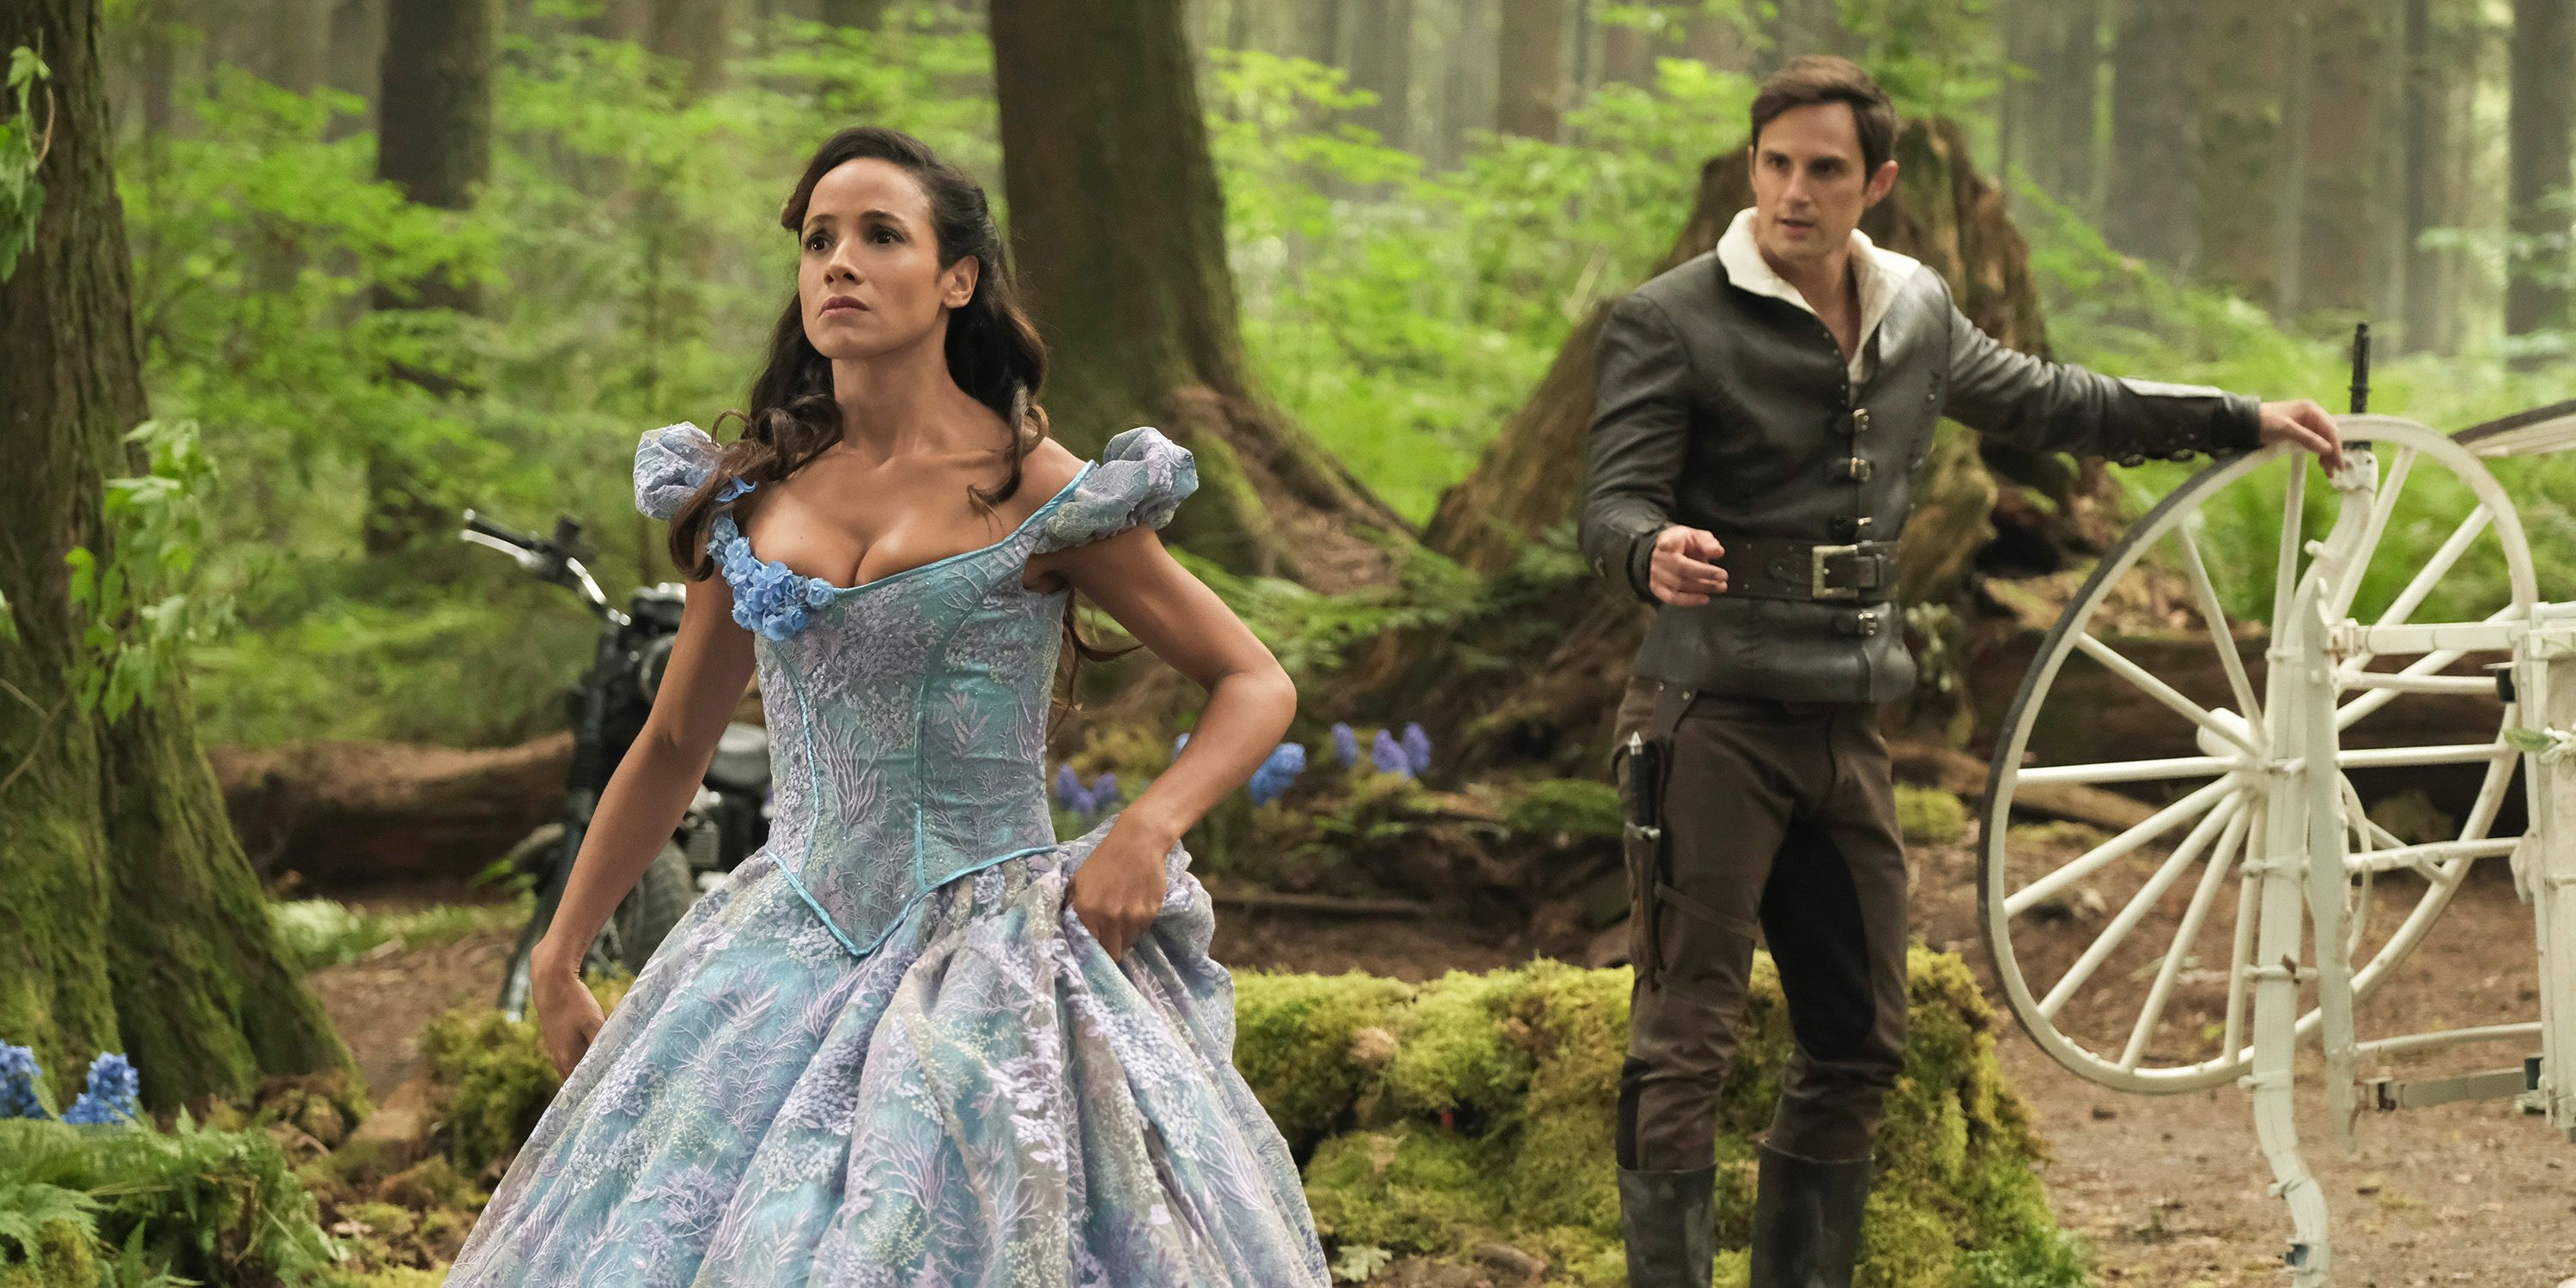 ANDREW J. WEST, DANIA RAMIREZ, Once Upon a Time, Season 7, Hyperion Heights